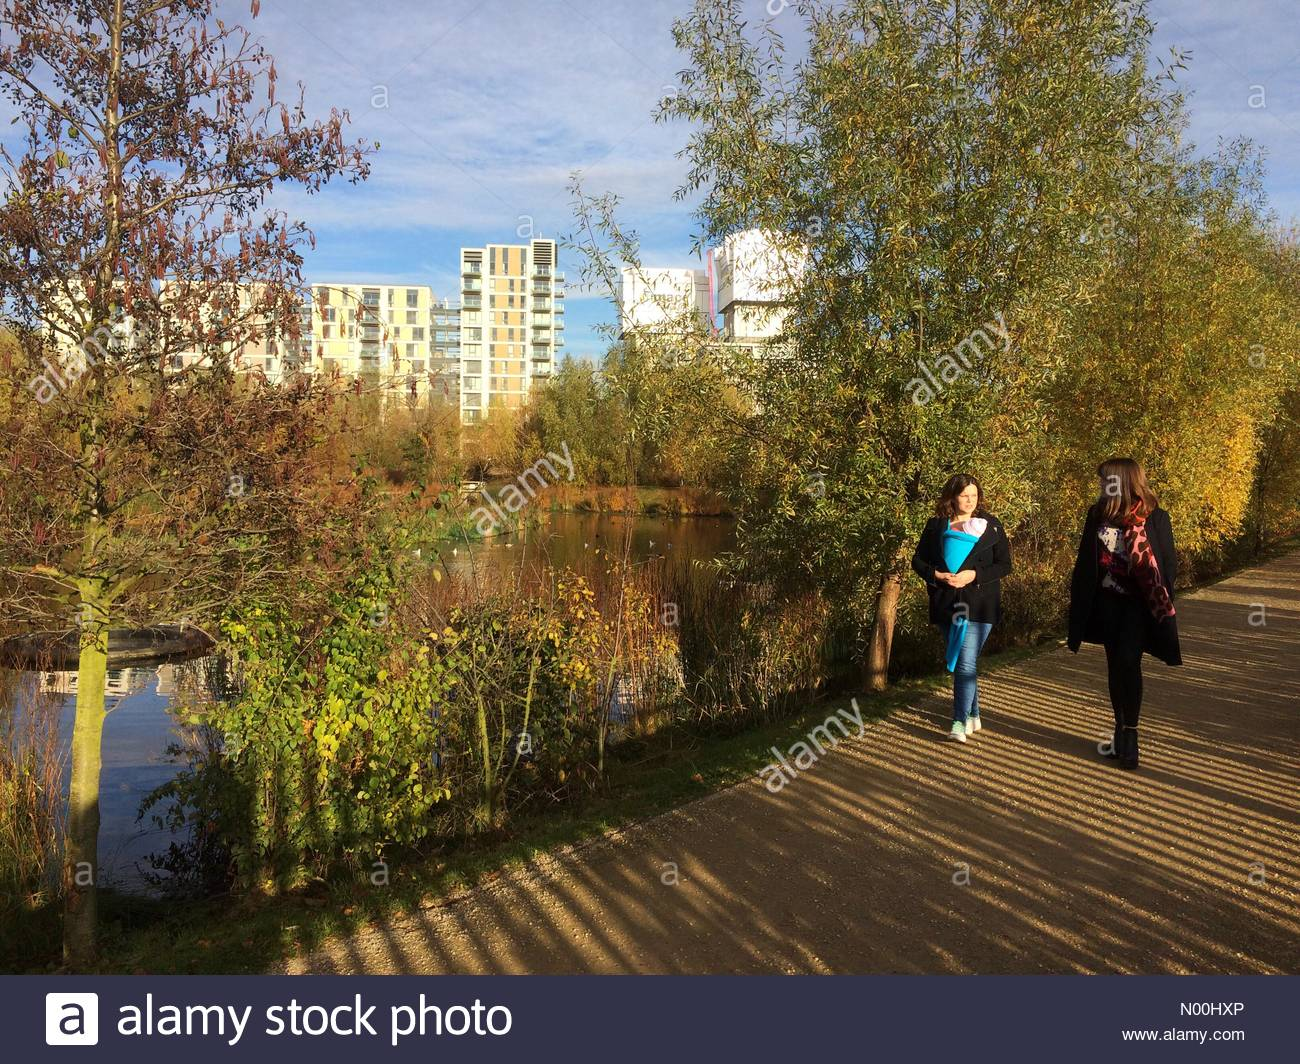 UK Weather, London, UK. 19th November 2017. People enjoying sunny weather at Queen Elizabeth Olympic Park in Stratford. - Stock Image